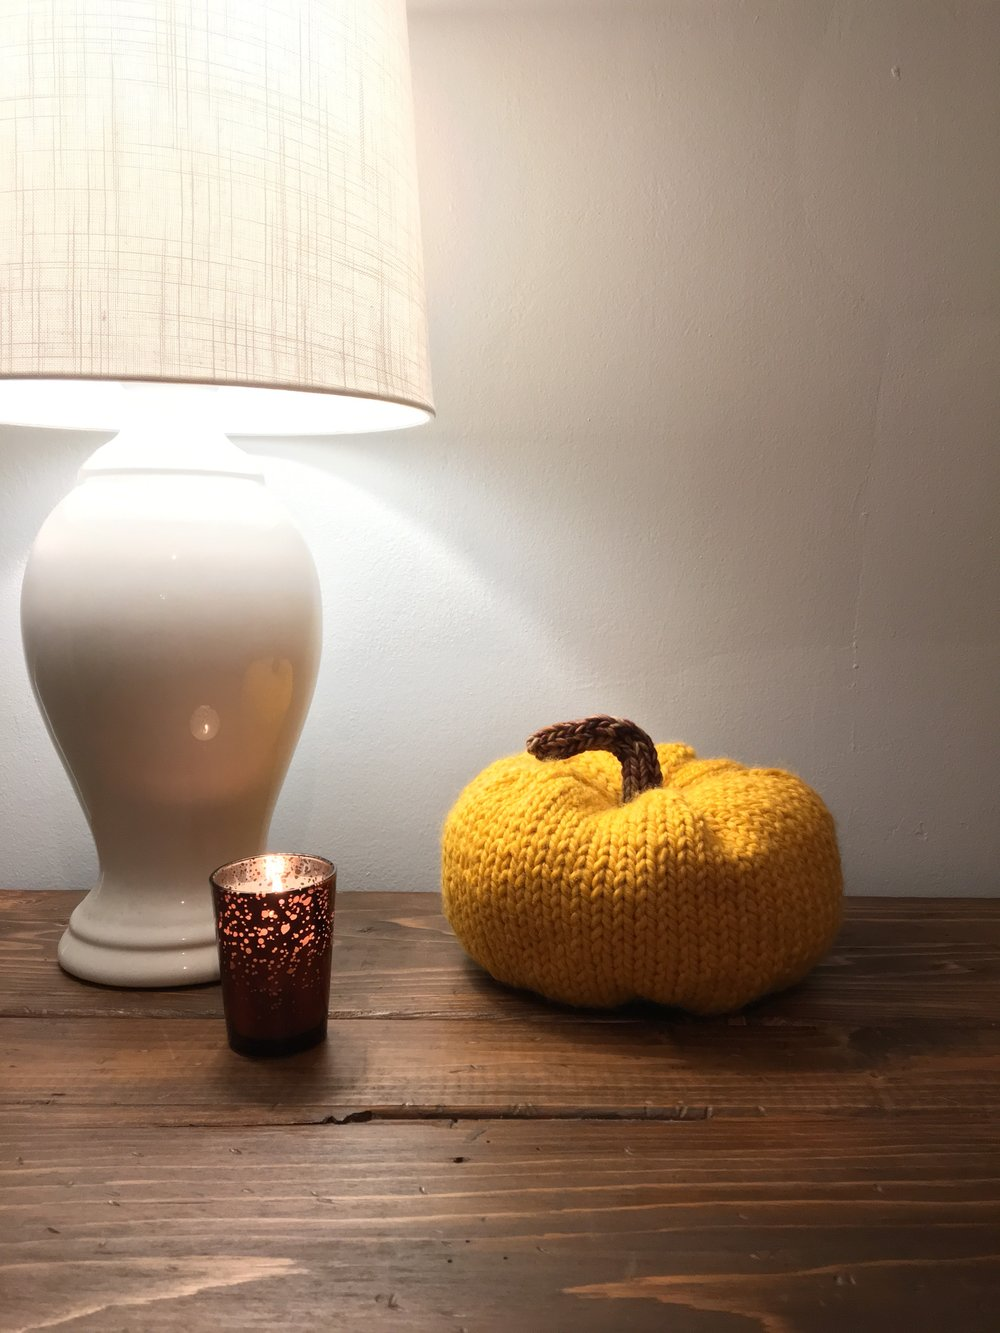 One aspect of home-ownership I'm really excited about is decorating for the seasons! I knitted this pumpkin over the weekend and love how it looks sitting in our entryway.